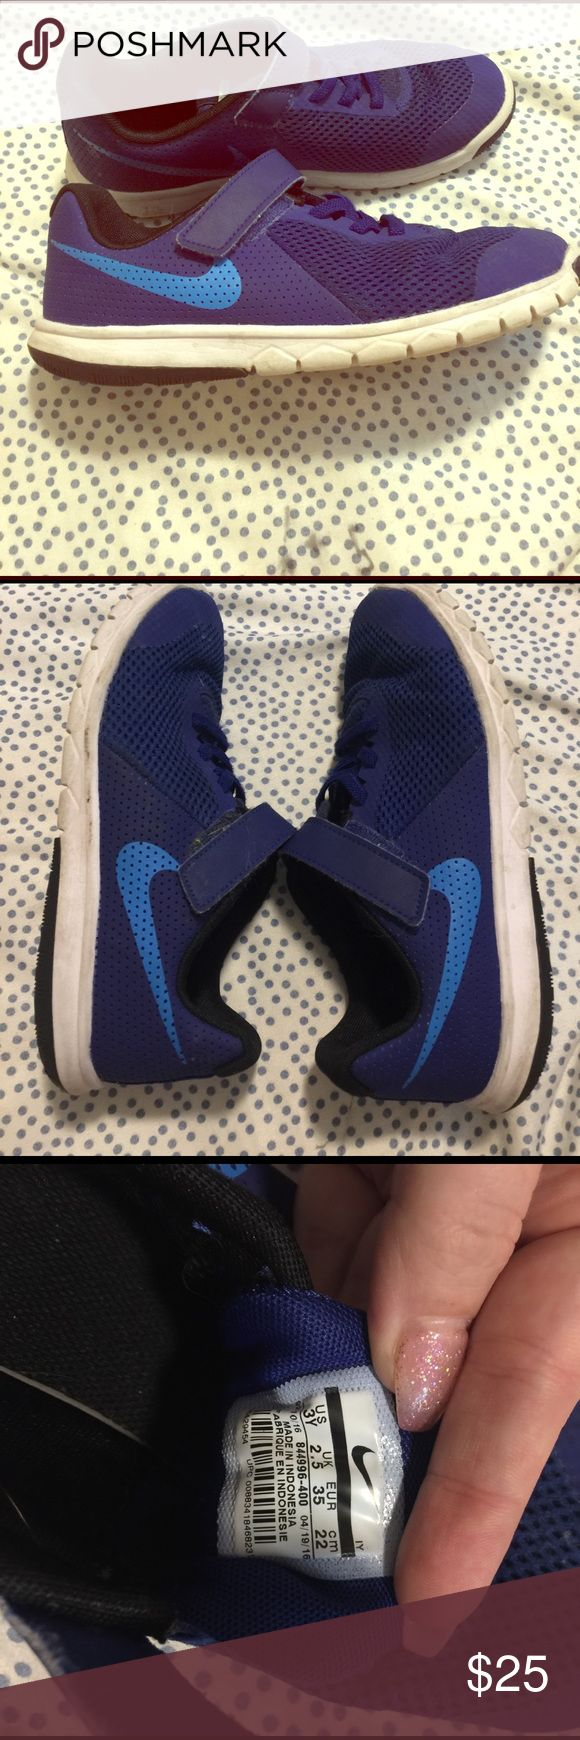 Boys Nike shoes Royal blue and light blue Velcro no lace shoes my sons feet are growing so quick!' Great shoes and lots of life left in them, will wash before I mail. Nike Shoes Sneakers